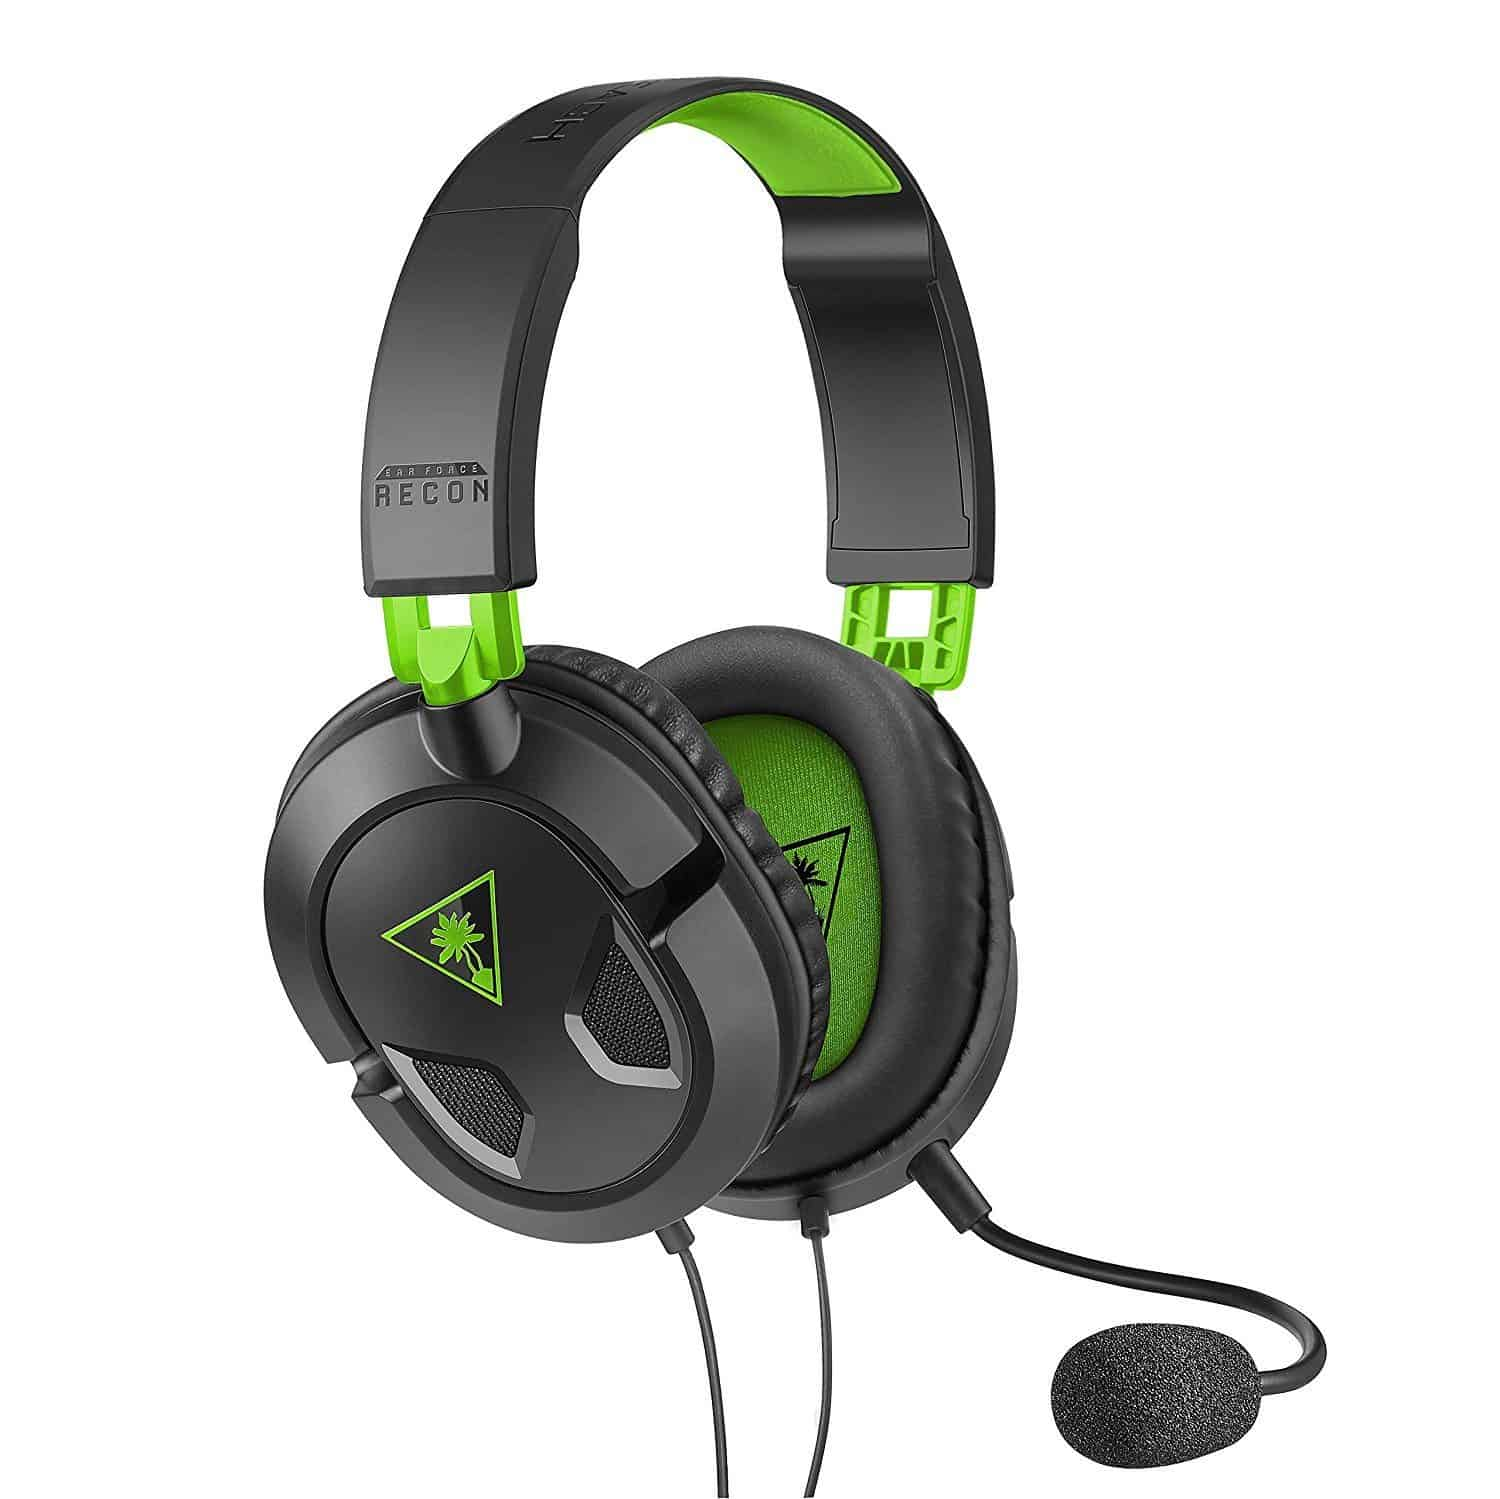 Best PS4 Wired Headset Under £50 – Turtle Beach